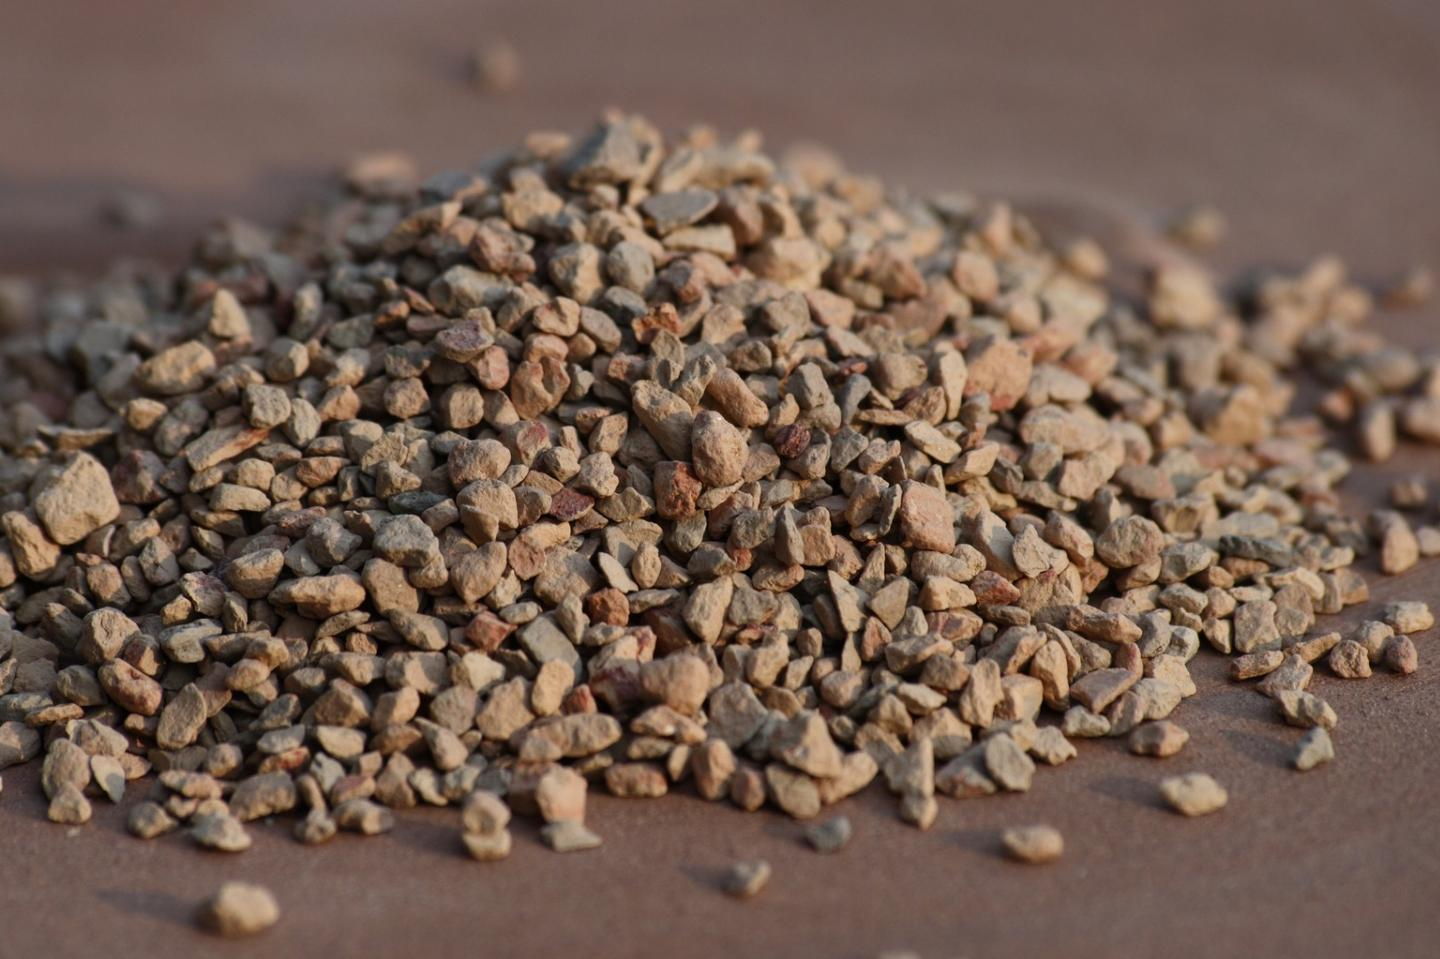 Grains of arcillite clay, which is a calcined form of themontmorillonite used in the study